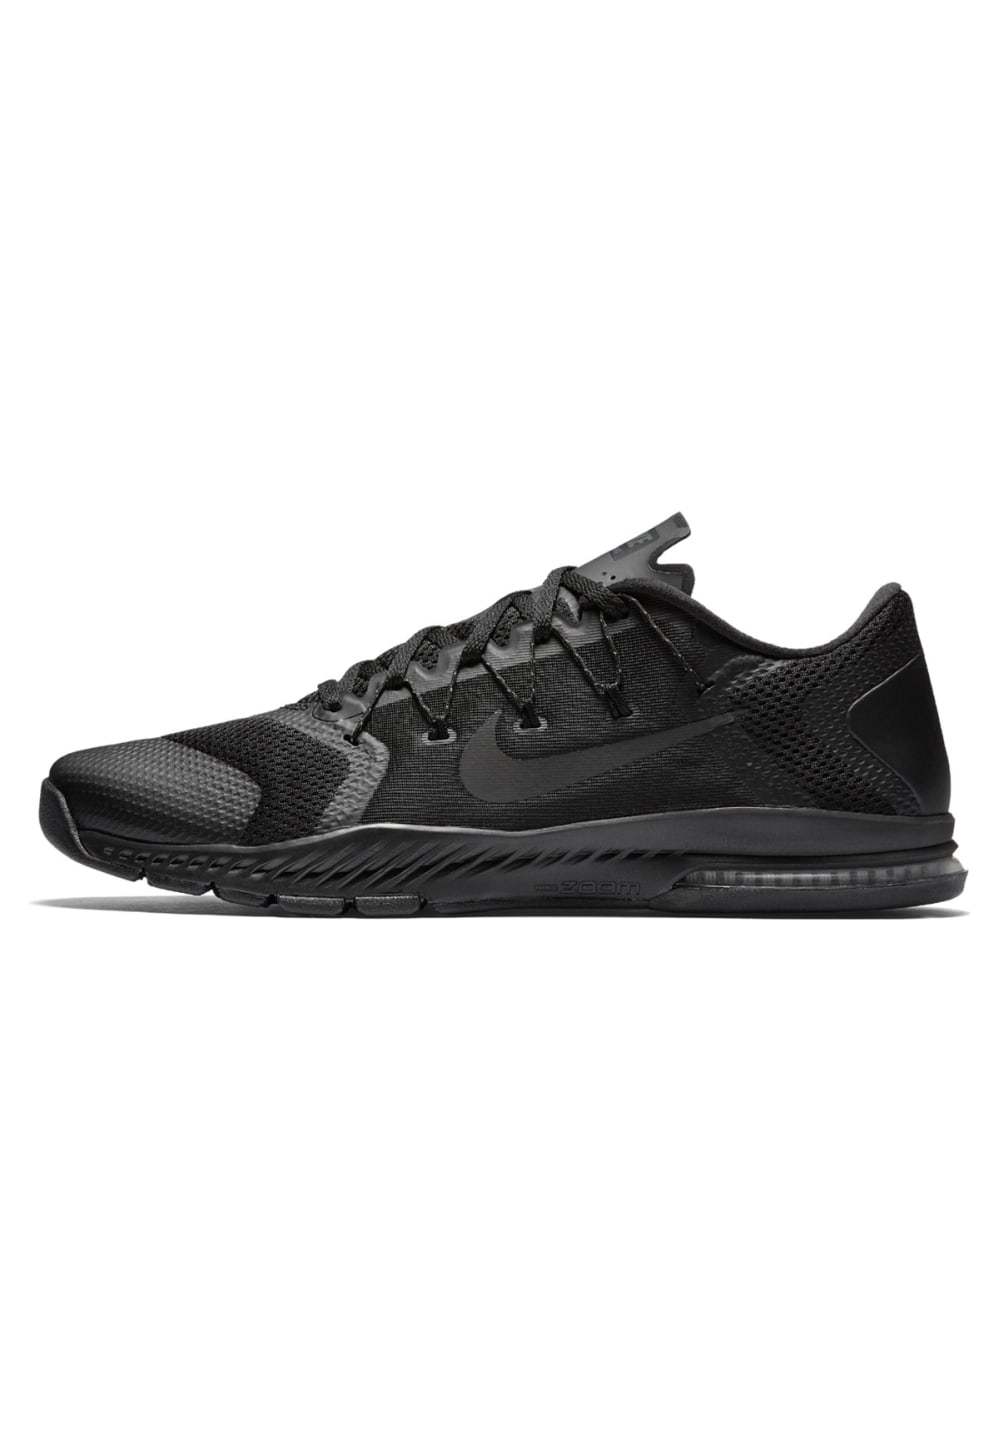 Nike Fitness Chaussures Homme Complete Zoom Train Noir 21run Pour rwr46Rq